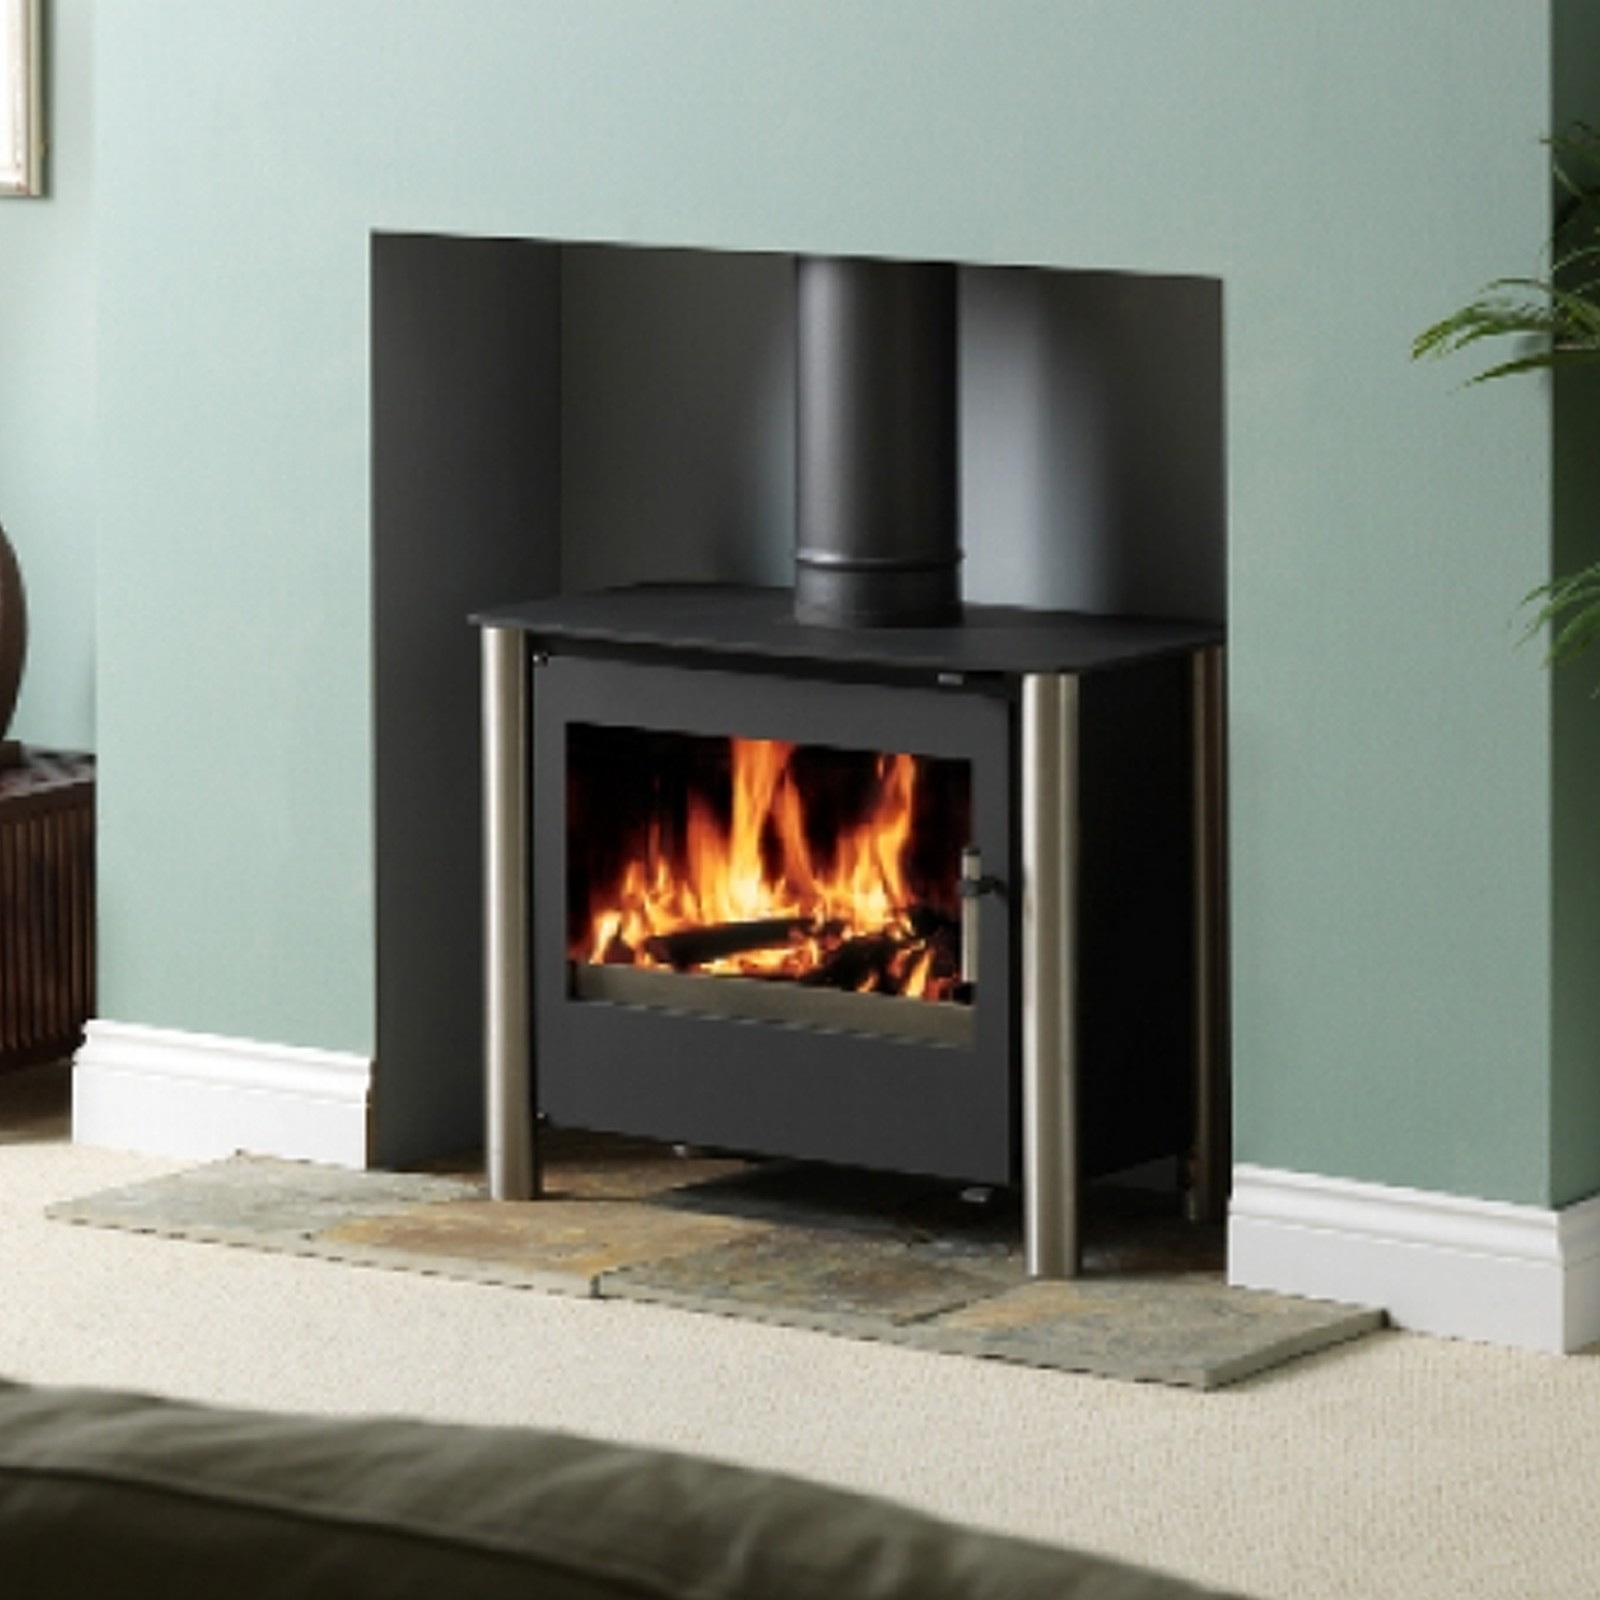 unbeatable uk deals esse 125 multifuel woodburning gas. Black Bedroom Furniture Sets. Home Design Ideas